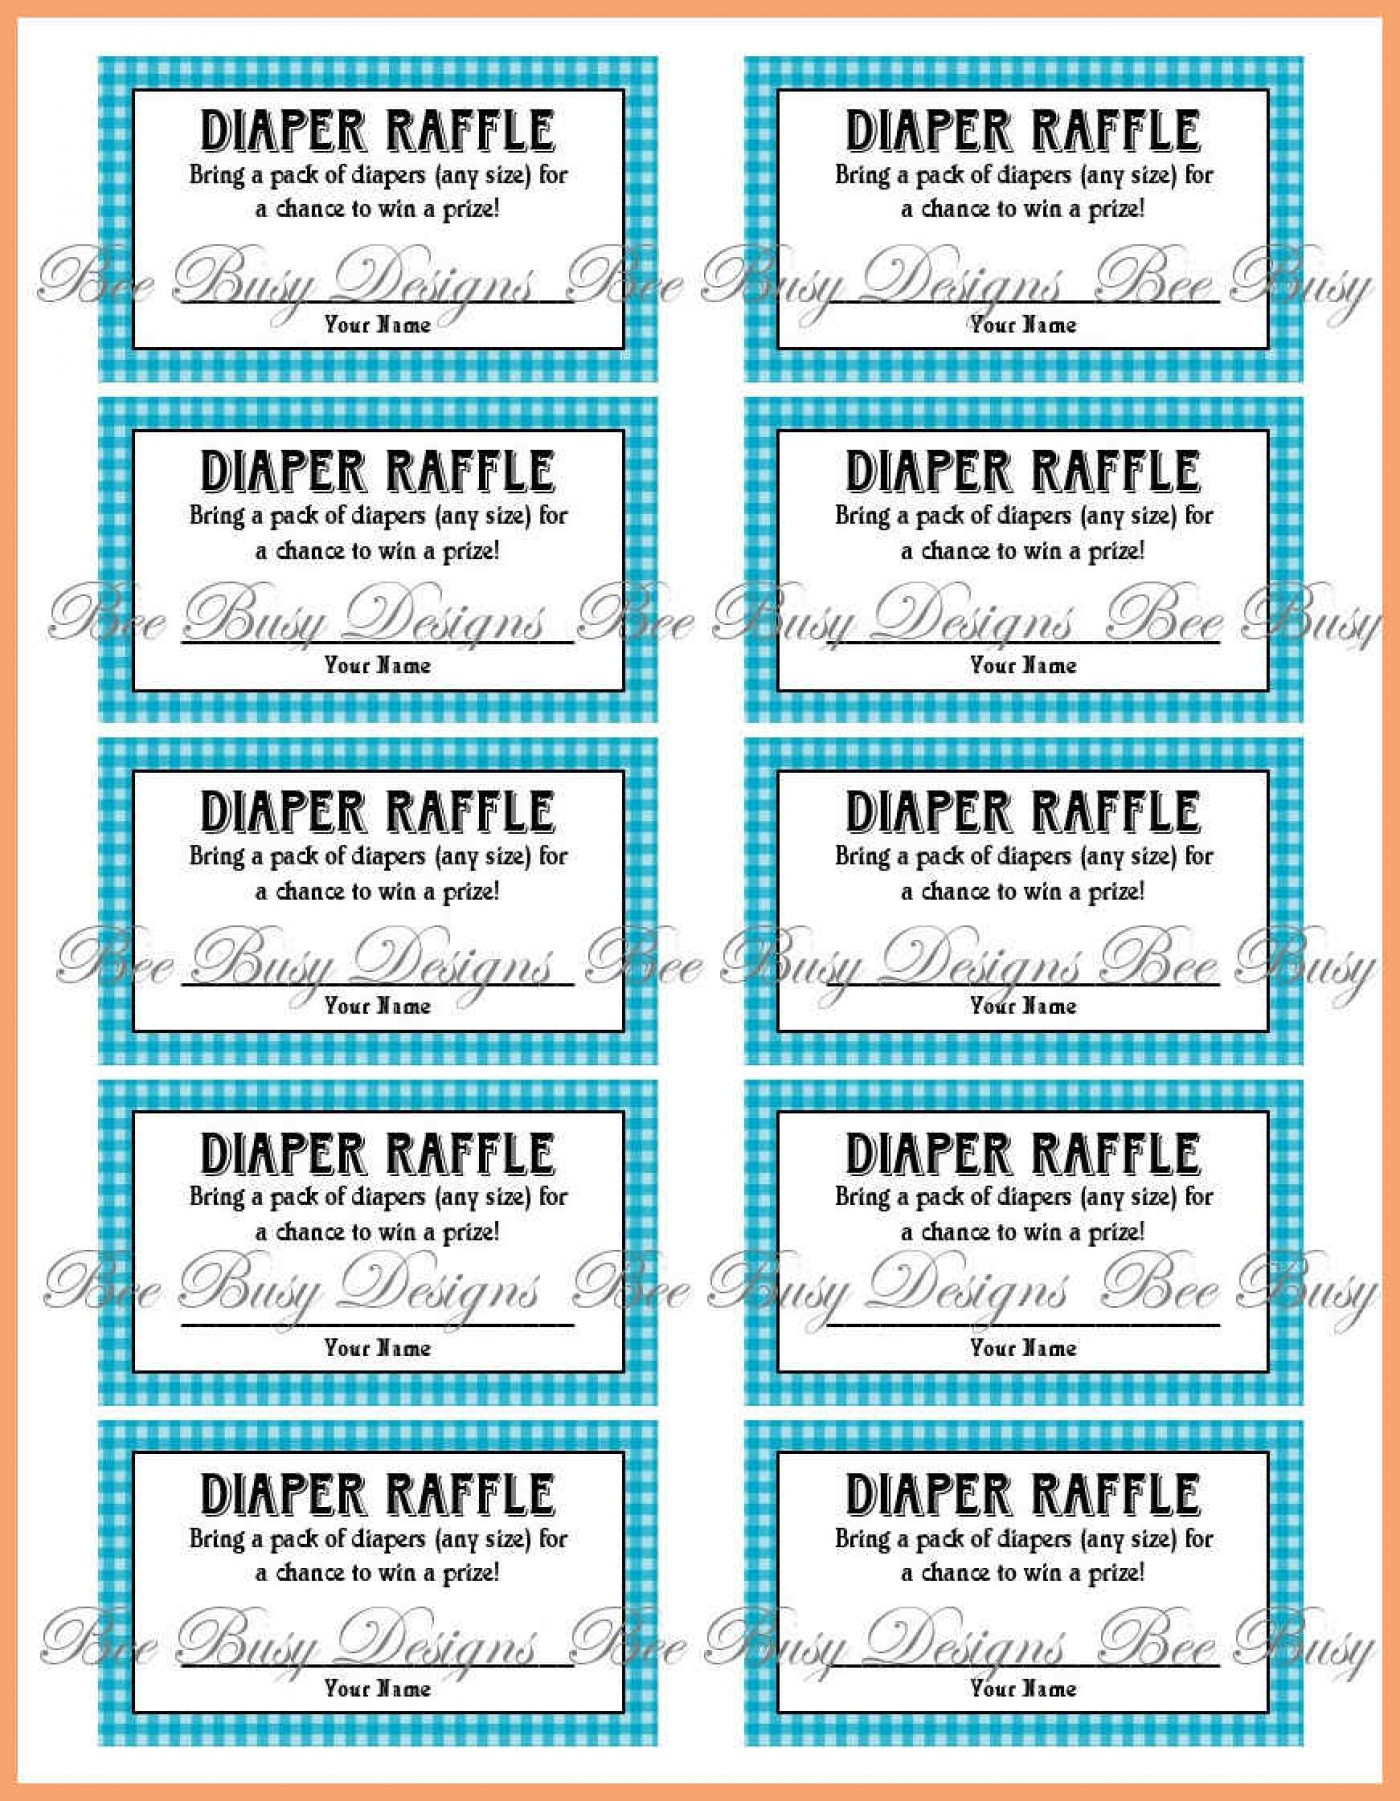 023 Free Printable Baby Shower Raffles Template Il Fullxfull 584S - Free Printable Baby Shower Diaper Raffle Tickets